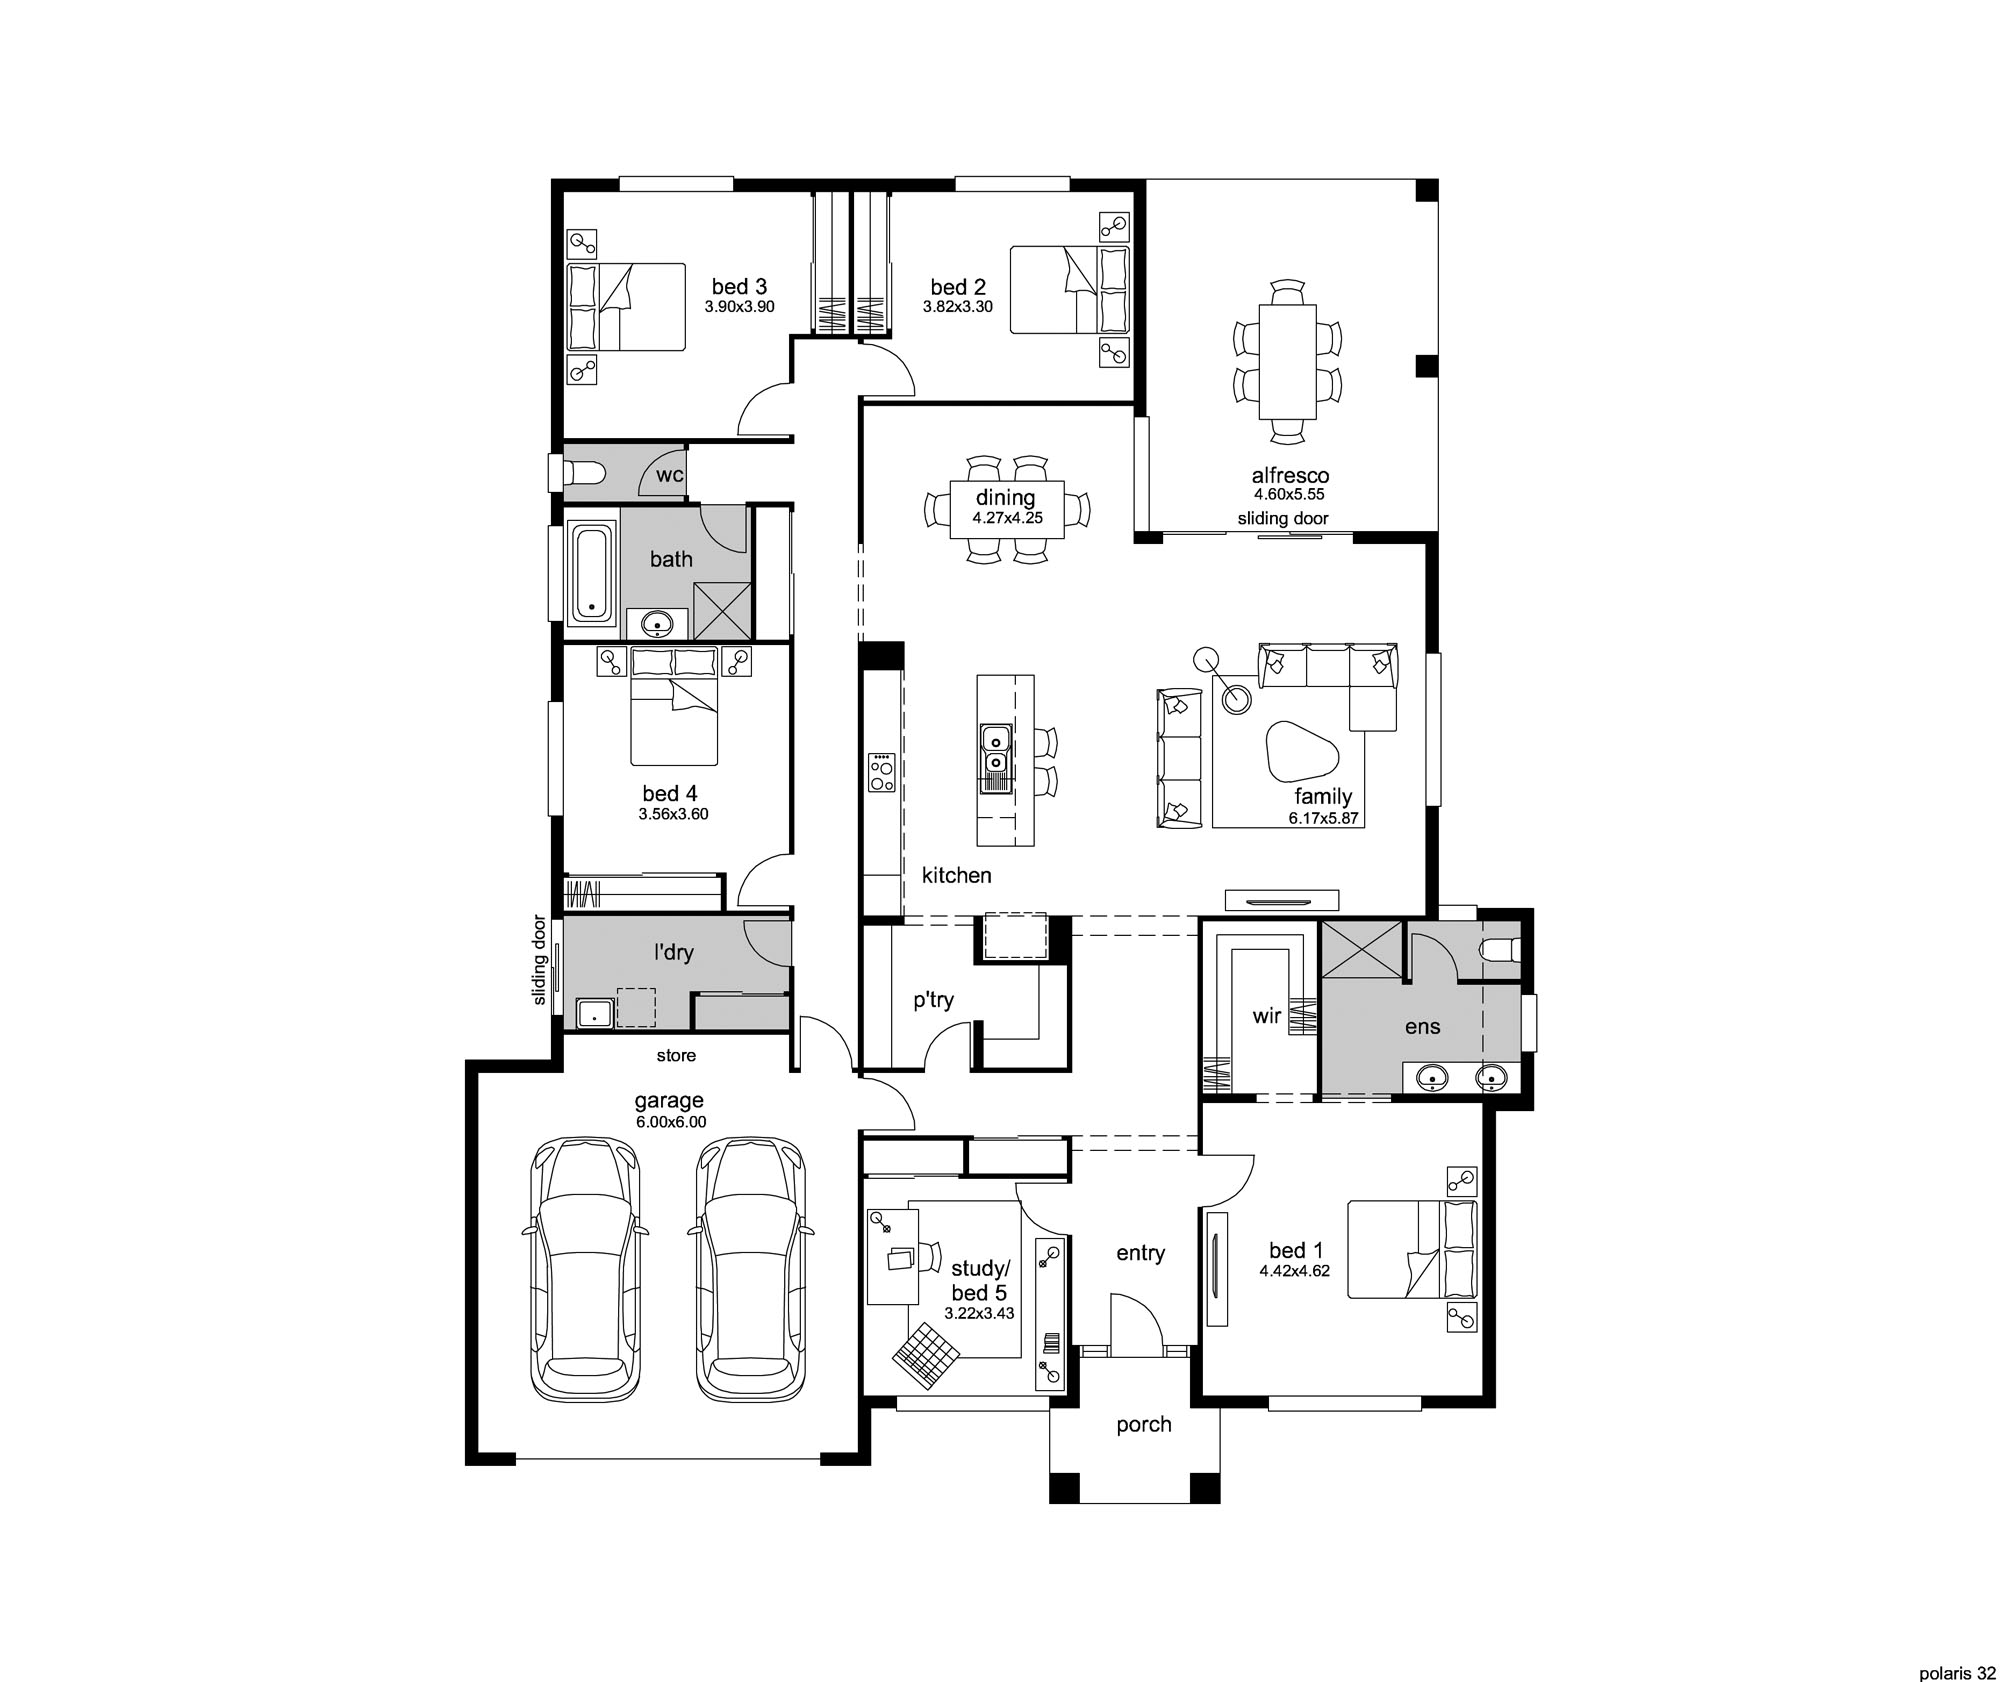 hampton-style house plan - polaris